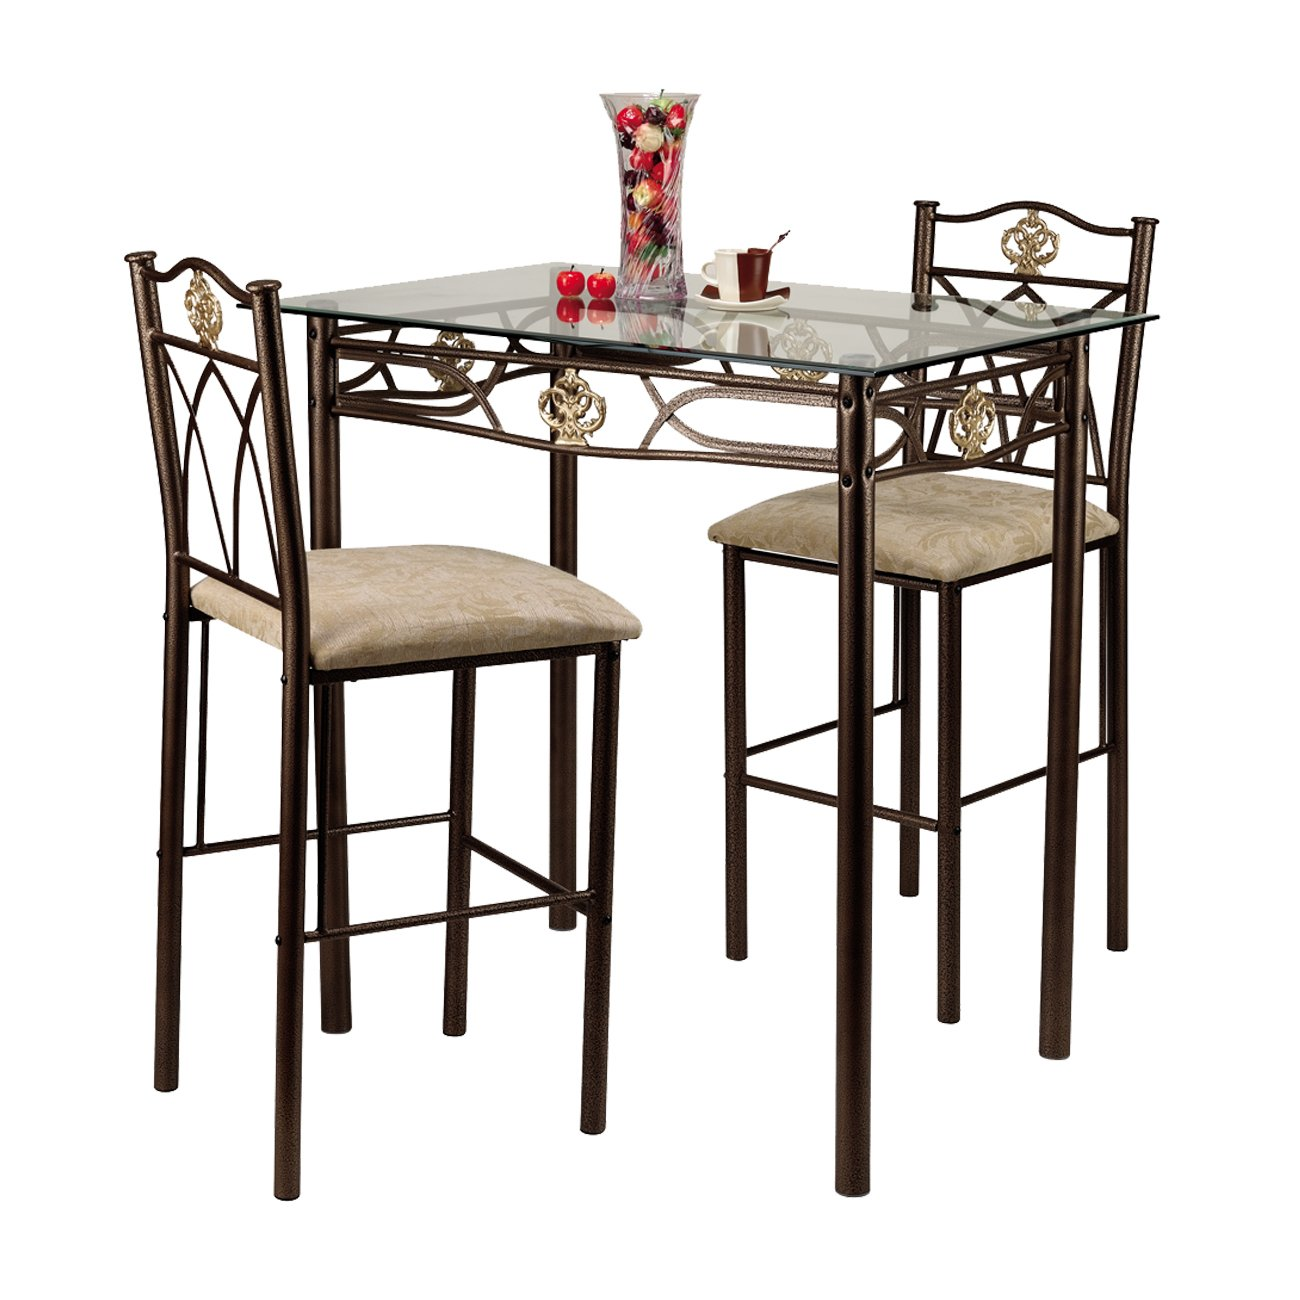 Amazon.com: Home Source Industries Crown Bistro 3 Piece Dining Set With  Glass Table Top And 2 Chairs: Kitchen U0026 Dining